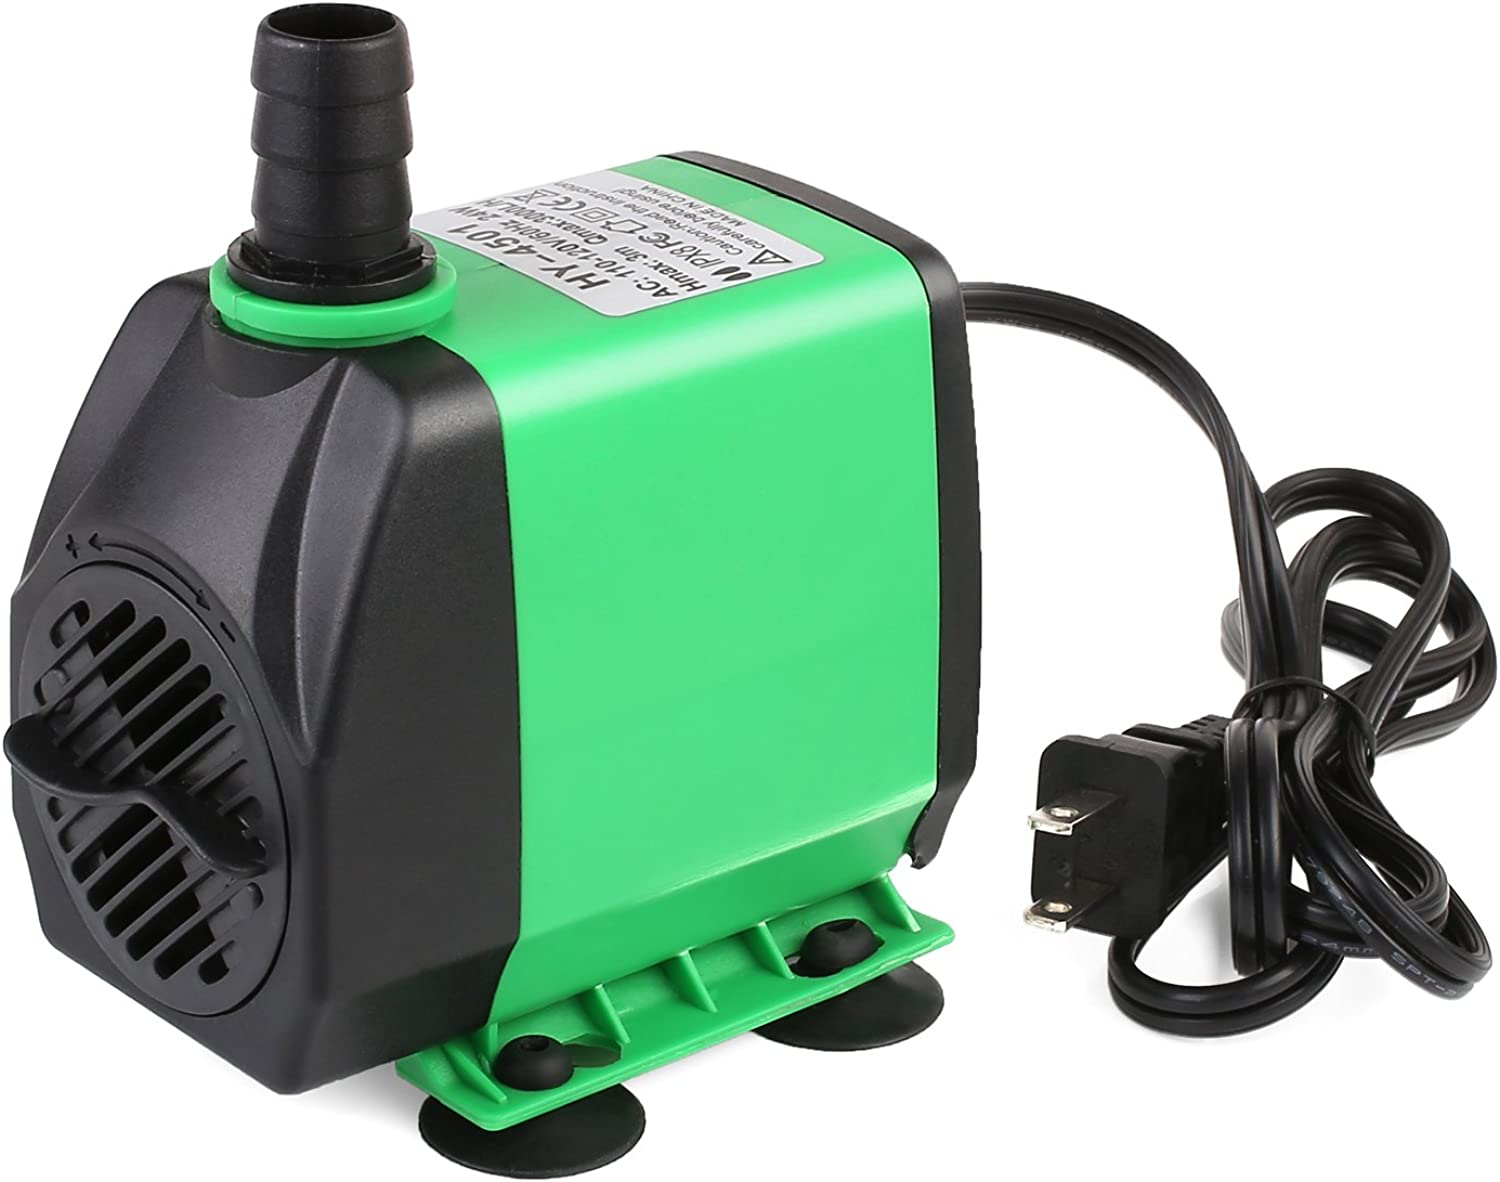 Pedy 800GPH (3000L H) Submersible Water Pump for Pond, Aquarium, Fish Tank Fountain Water Quiet Pump Hydroponics, 24W